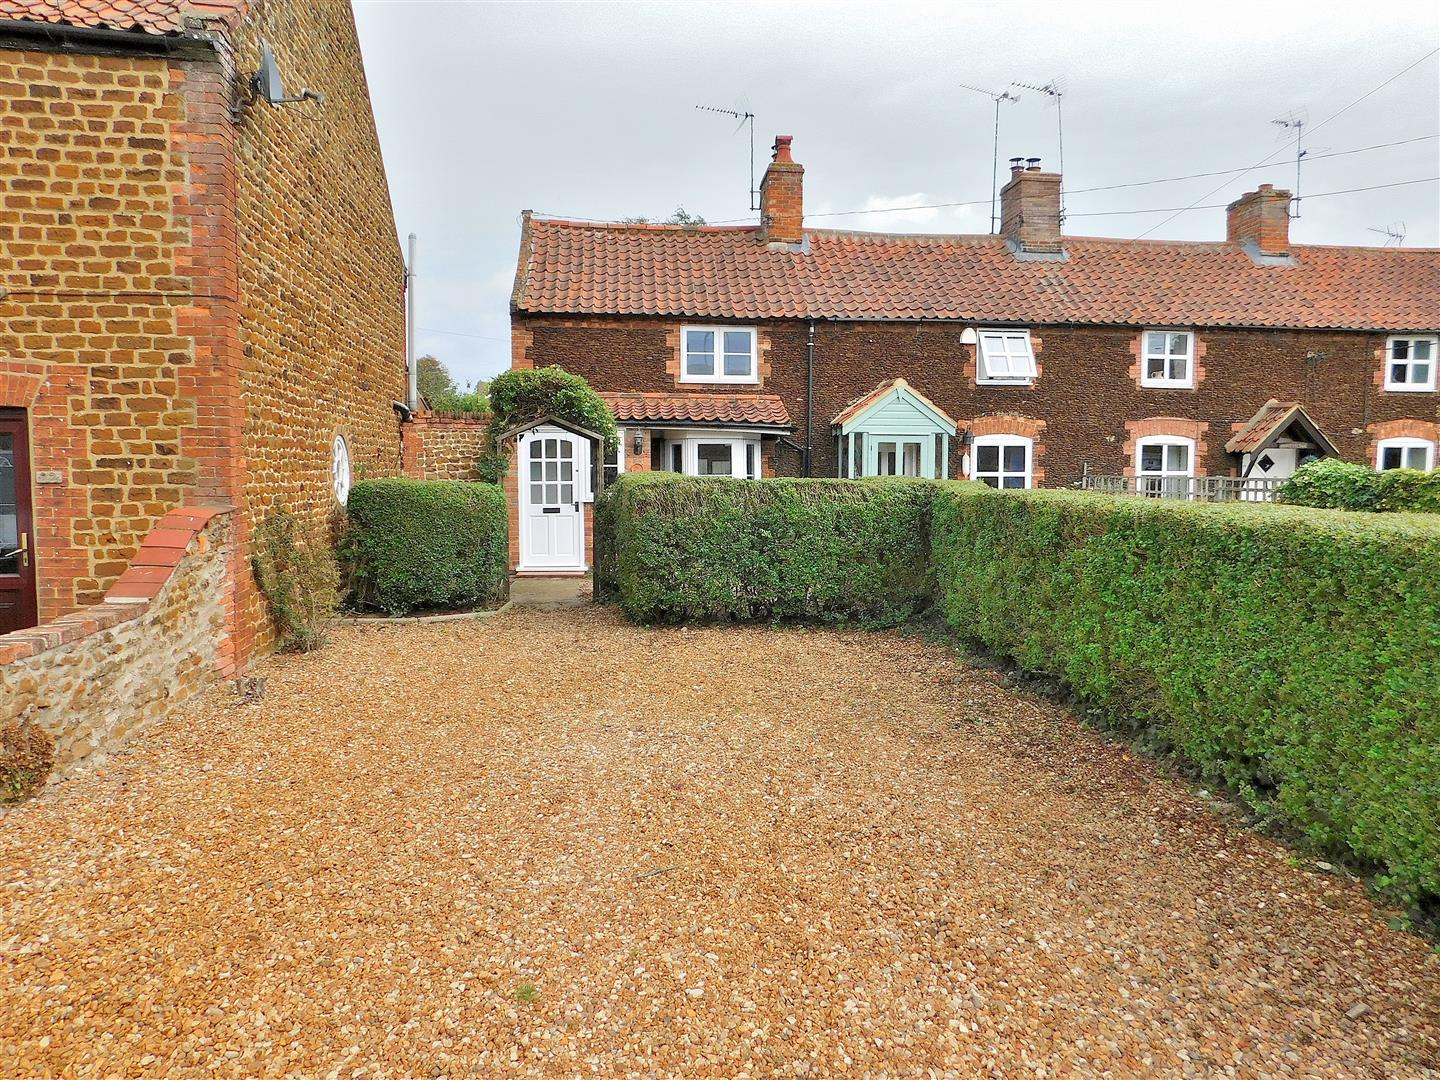 2 bed cottage for sale in King's Lynn, PE31 6PN 0